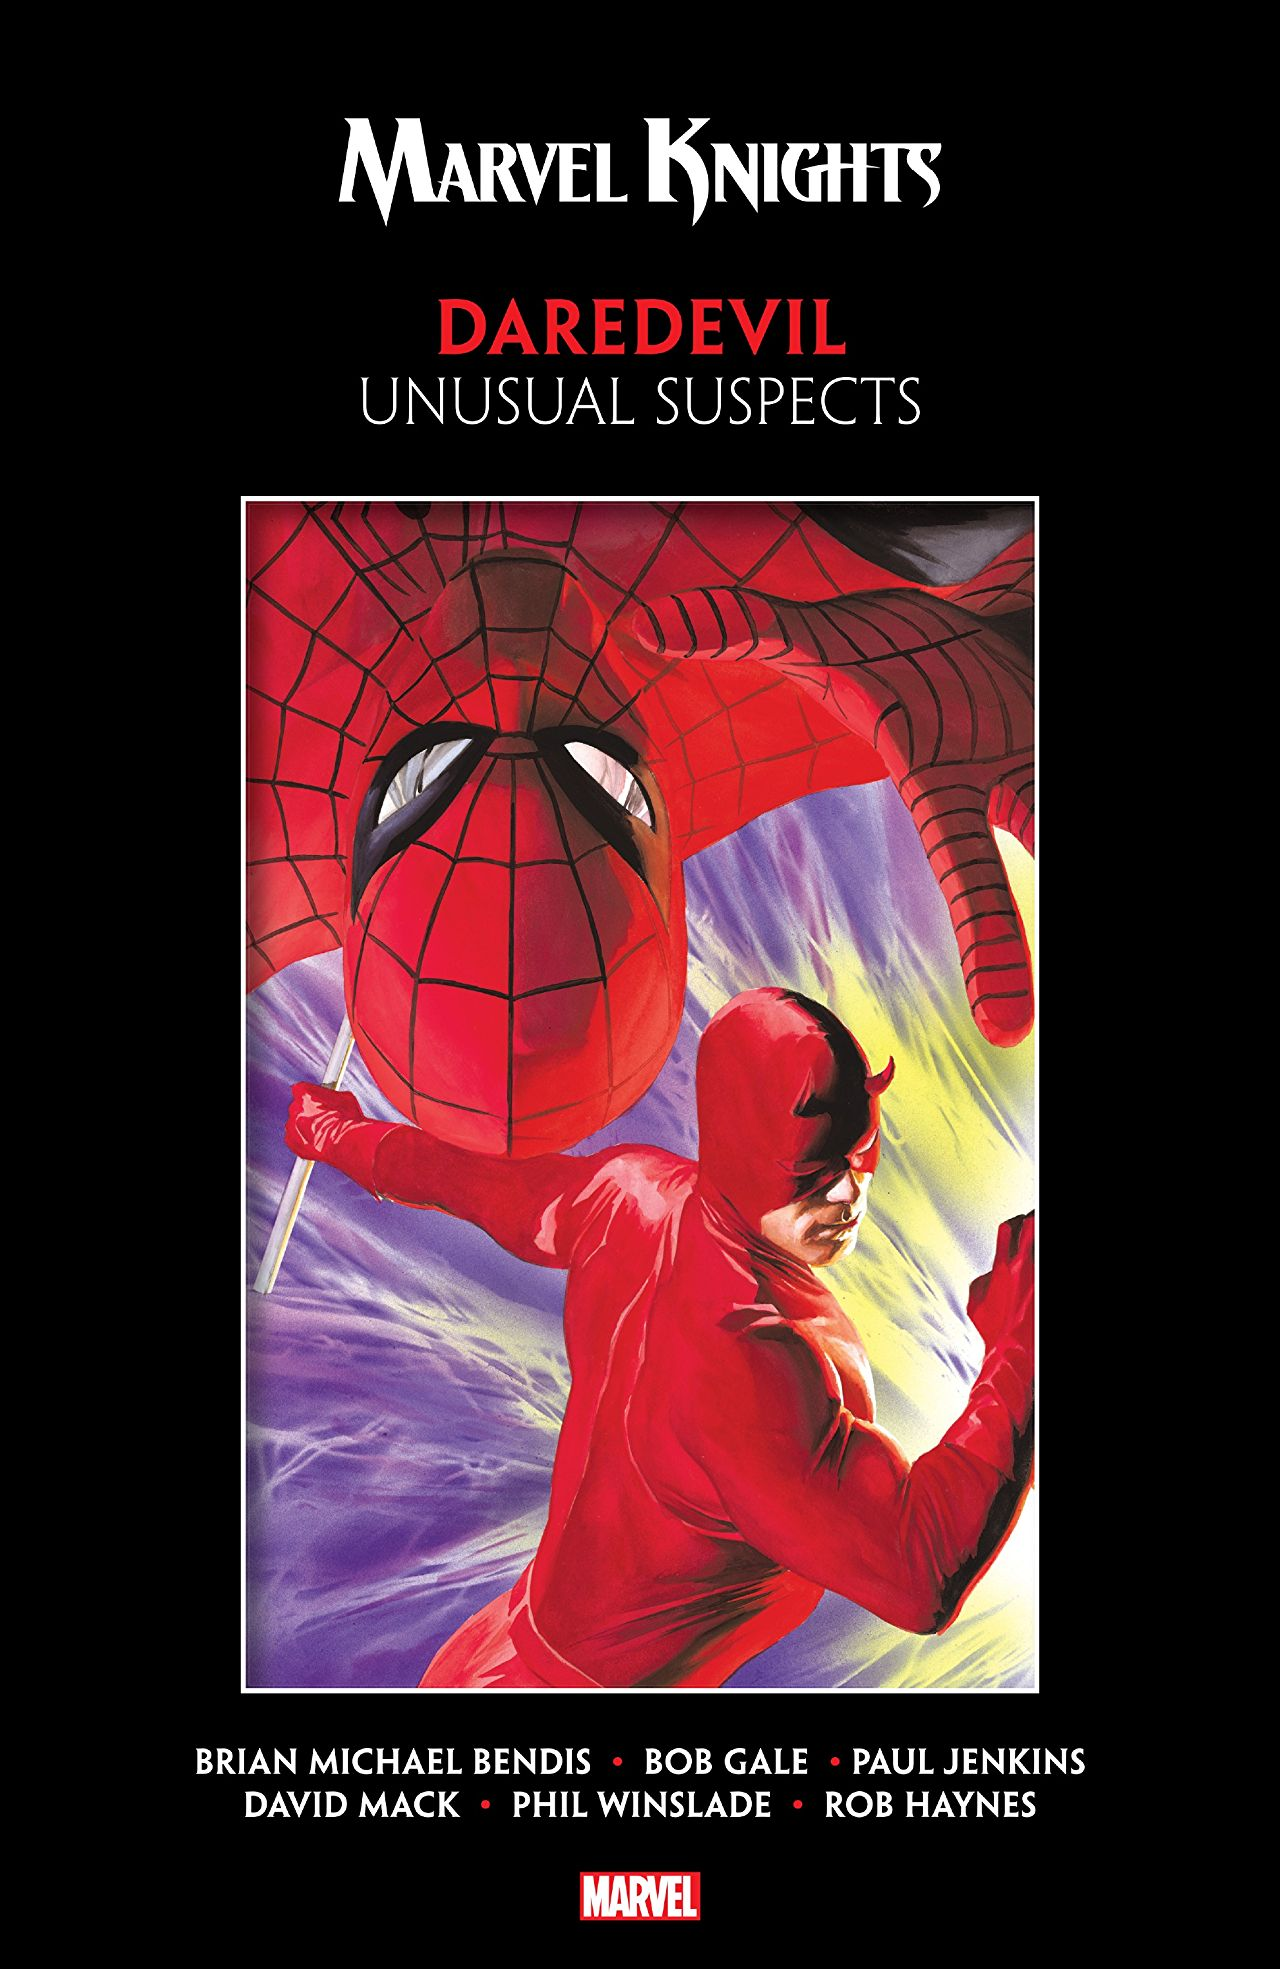 3 takeaways from 'Marvel Knights Daredevil: Unusual Suspects': These stories are timeless